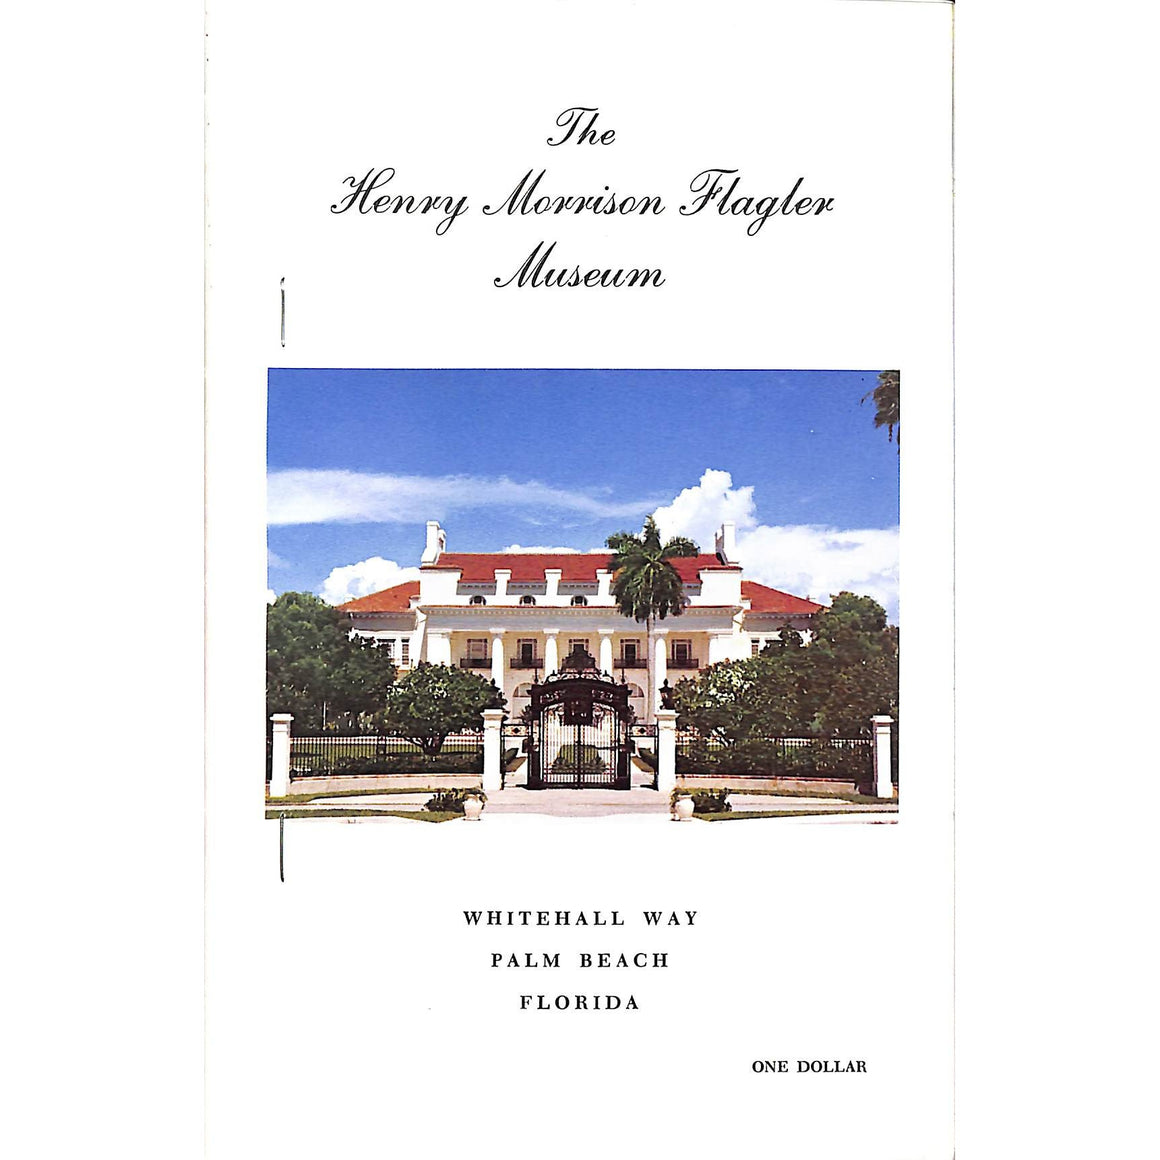 The Henry Morrison Flagler Museum: Whitehall Way Palm Beach